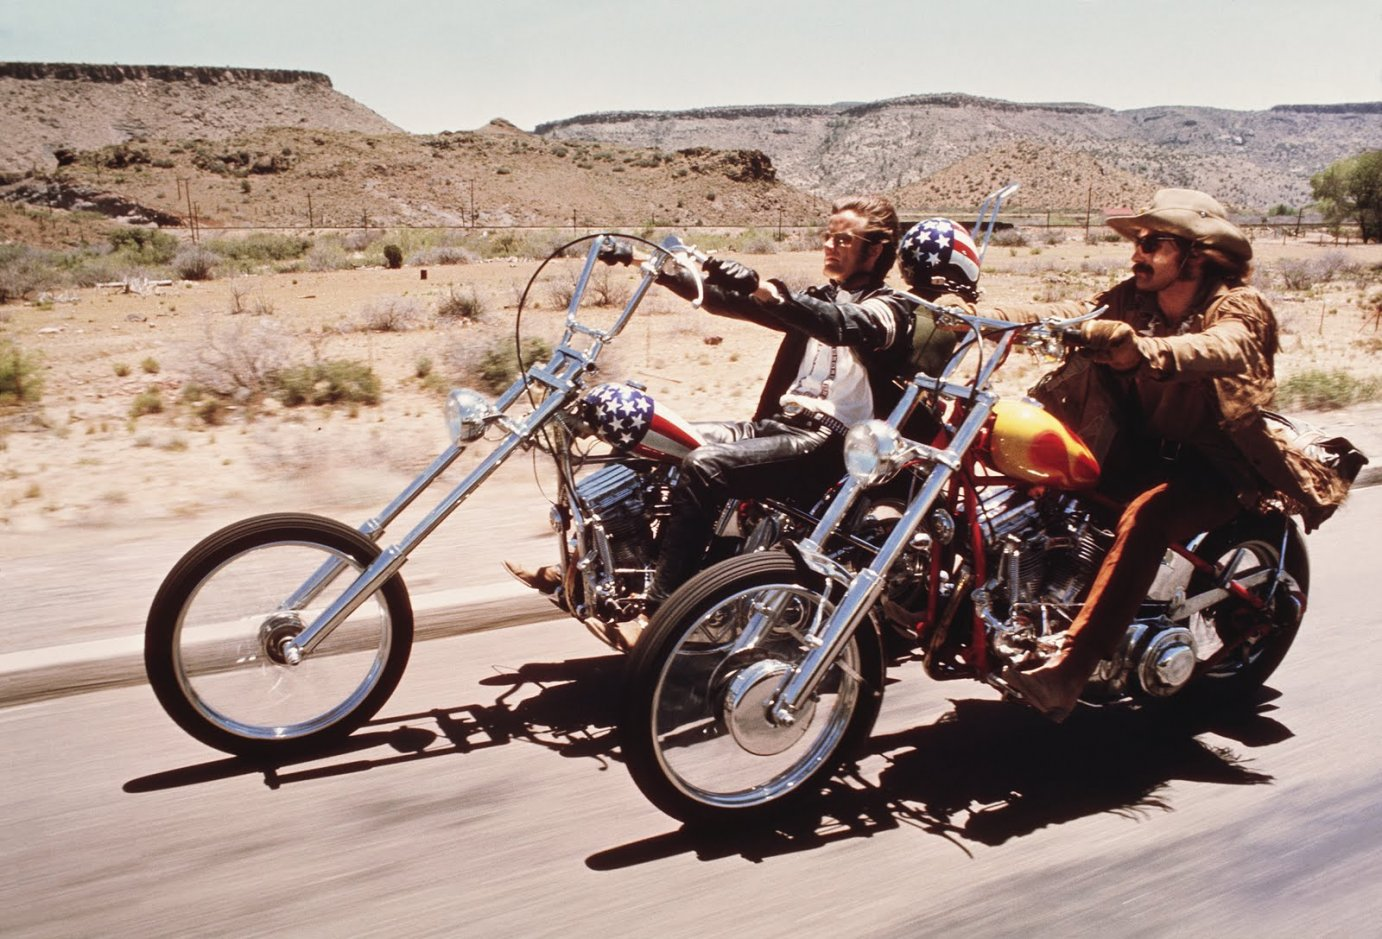 """In 1969, Hopper directed and starred in """"Easy Rider,"""" for which he received an Academy Award for Best Original Screenplay (as co-writer). Hopper (right) starred with Peter Fonda."""